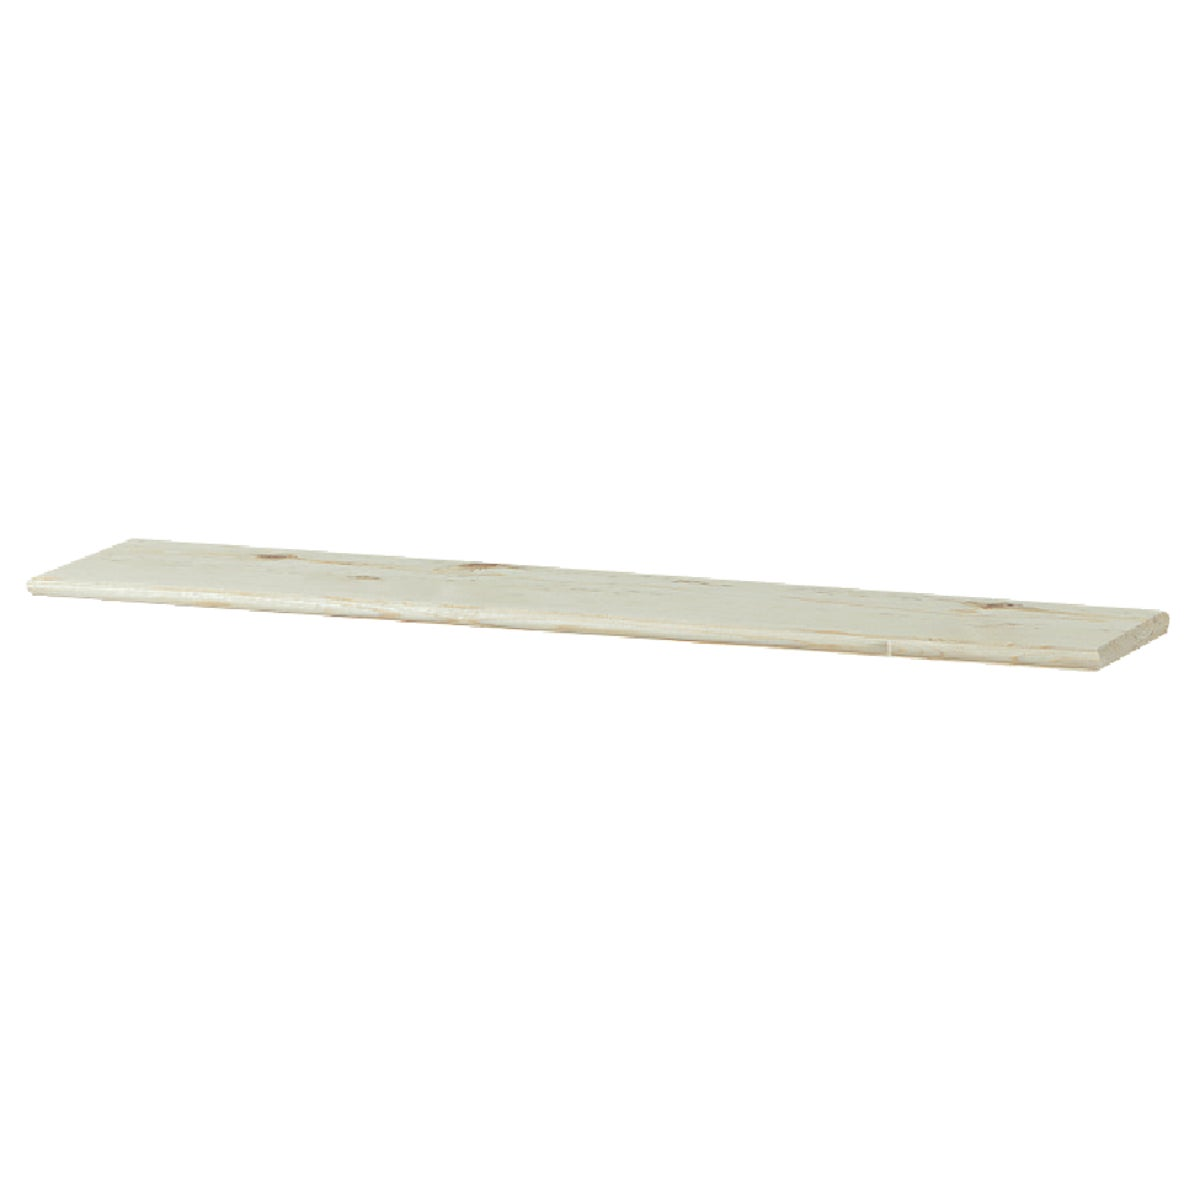 7X36 PINE SHELF - 1366/F-736 by Waddell Mfg Company